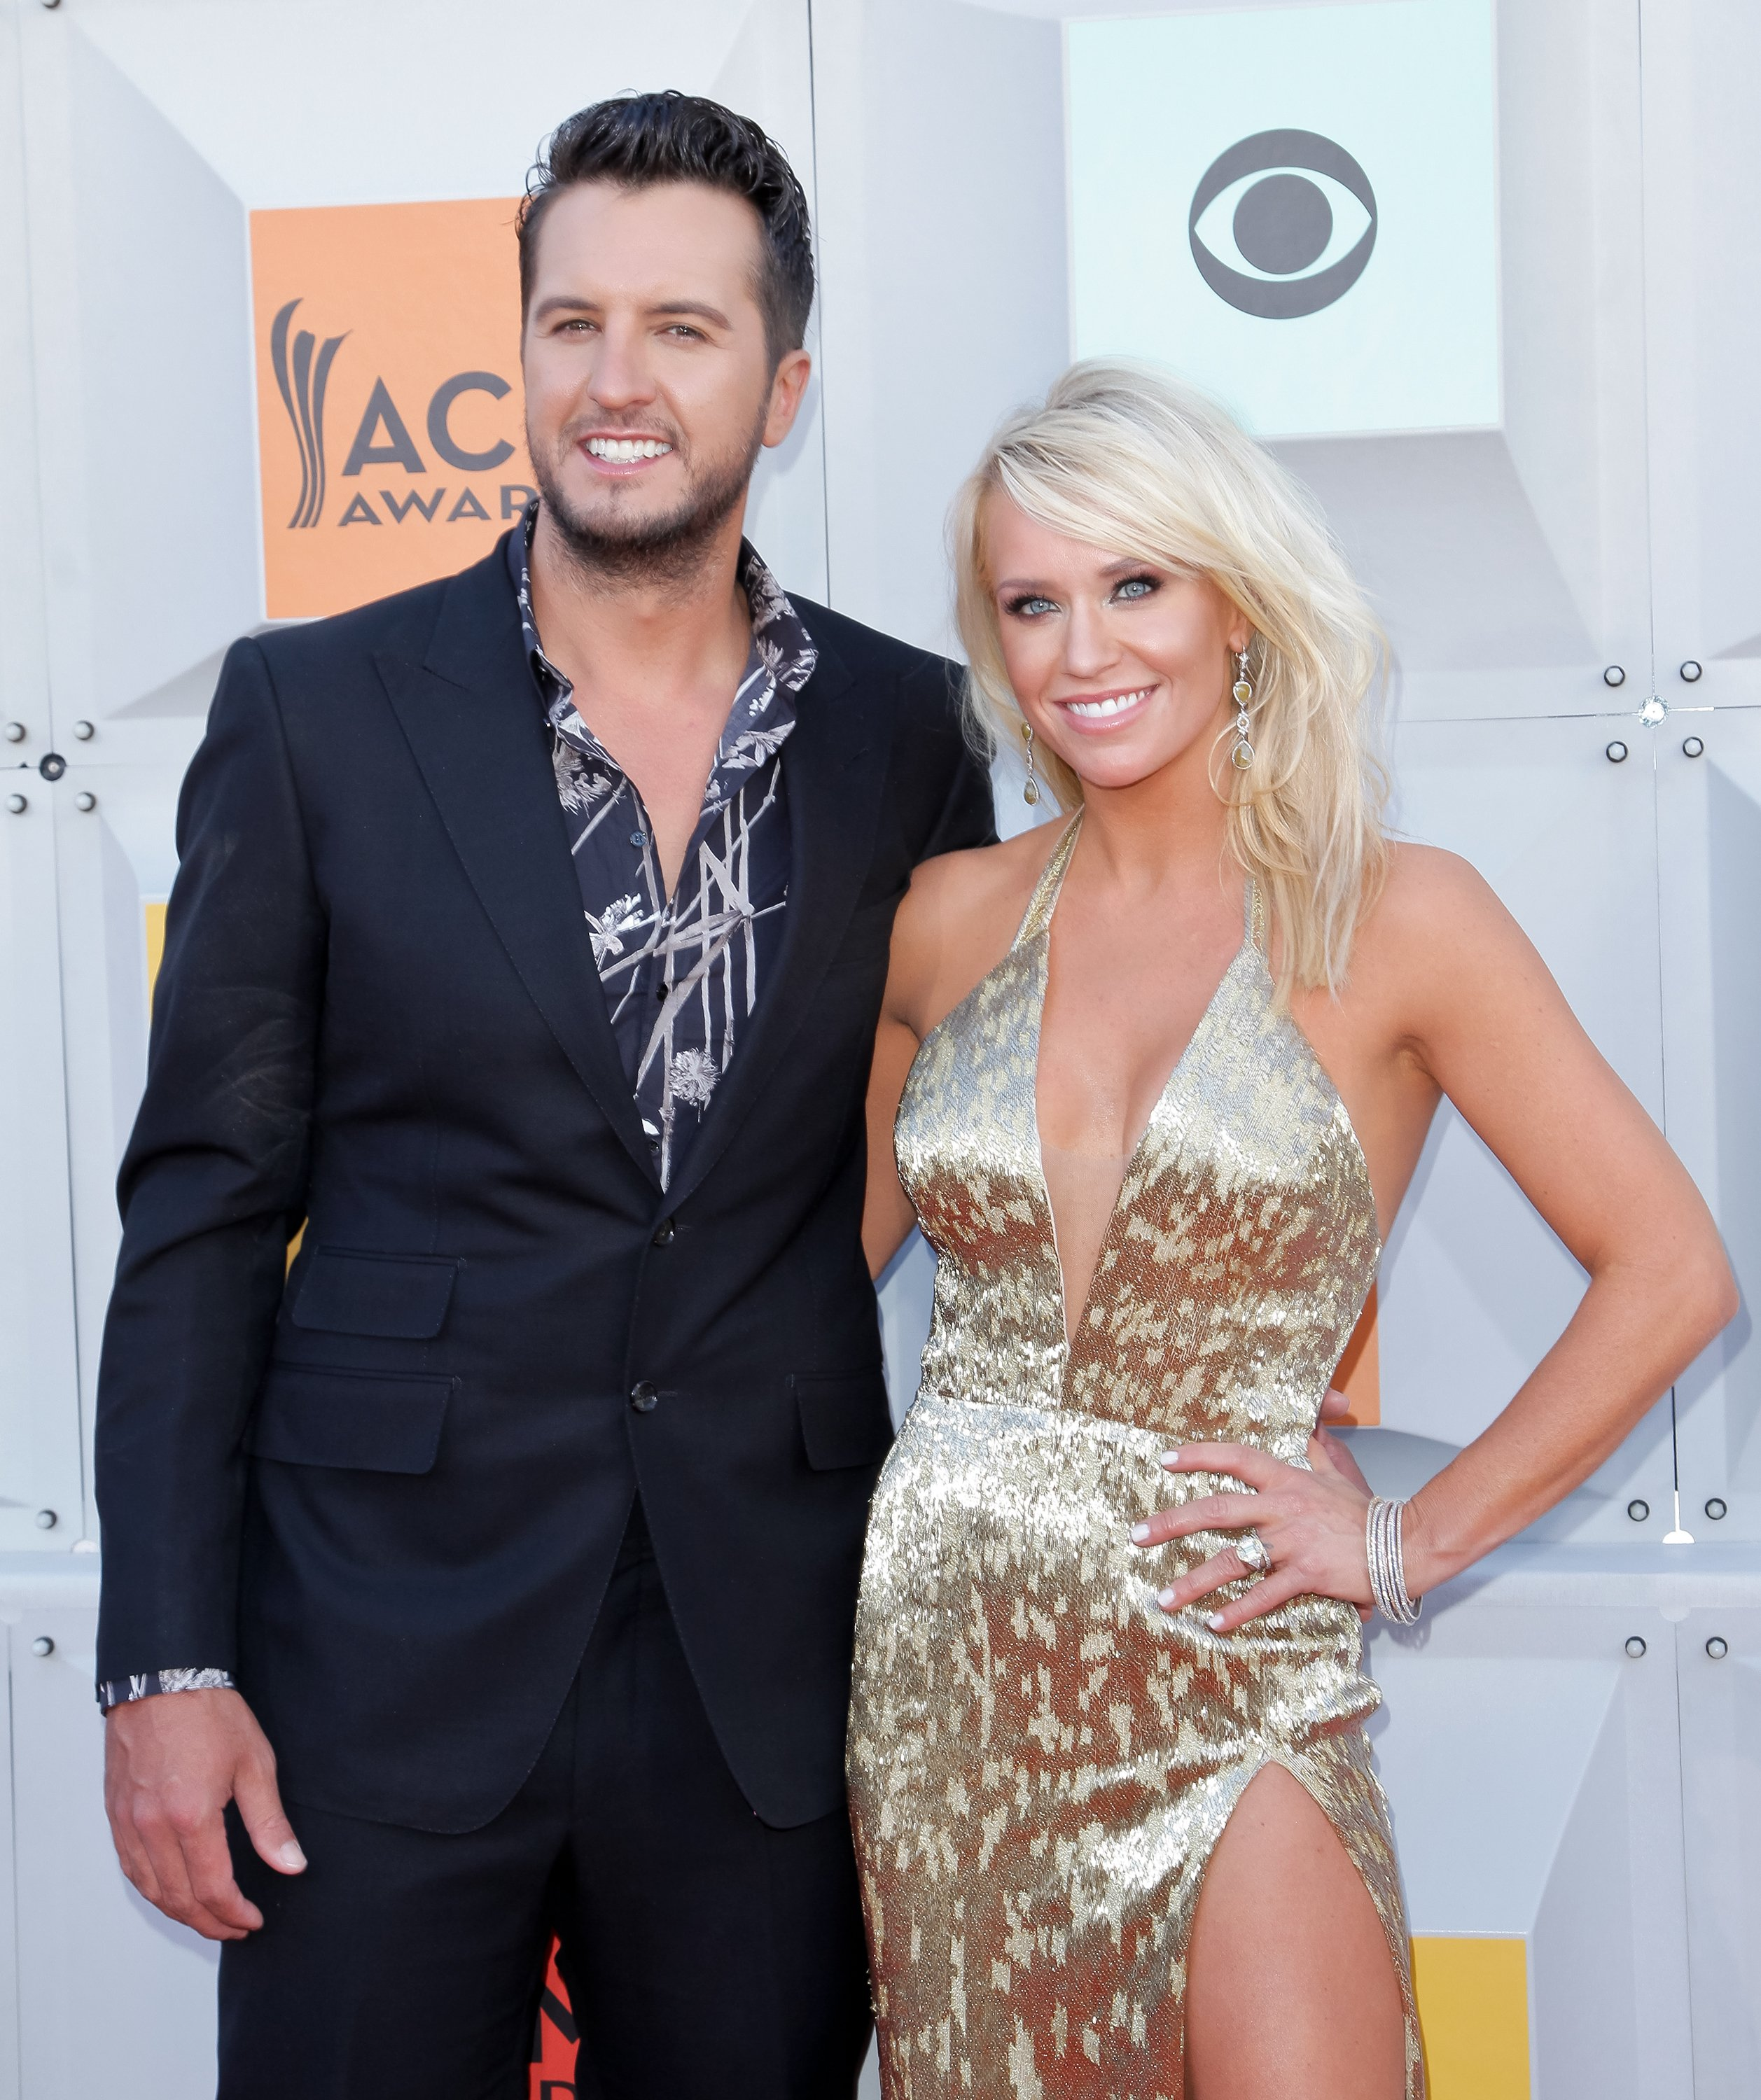 Luke Bryan and Caroline Boyer attend the 51st Academy of Country Music Awards in 2016. | Source: Getty Images